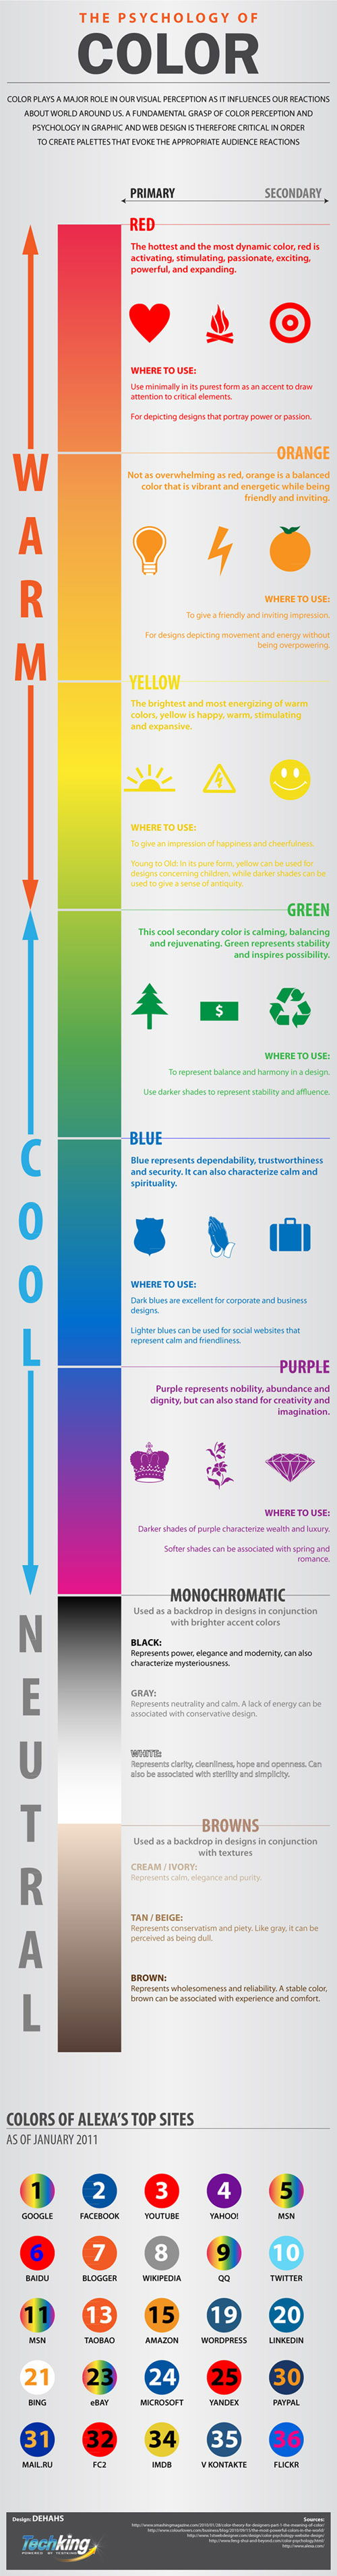 The Psychology of Color Must See for Web Designers